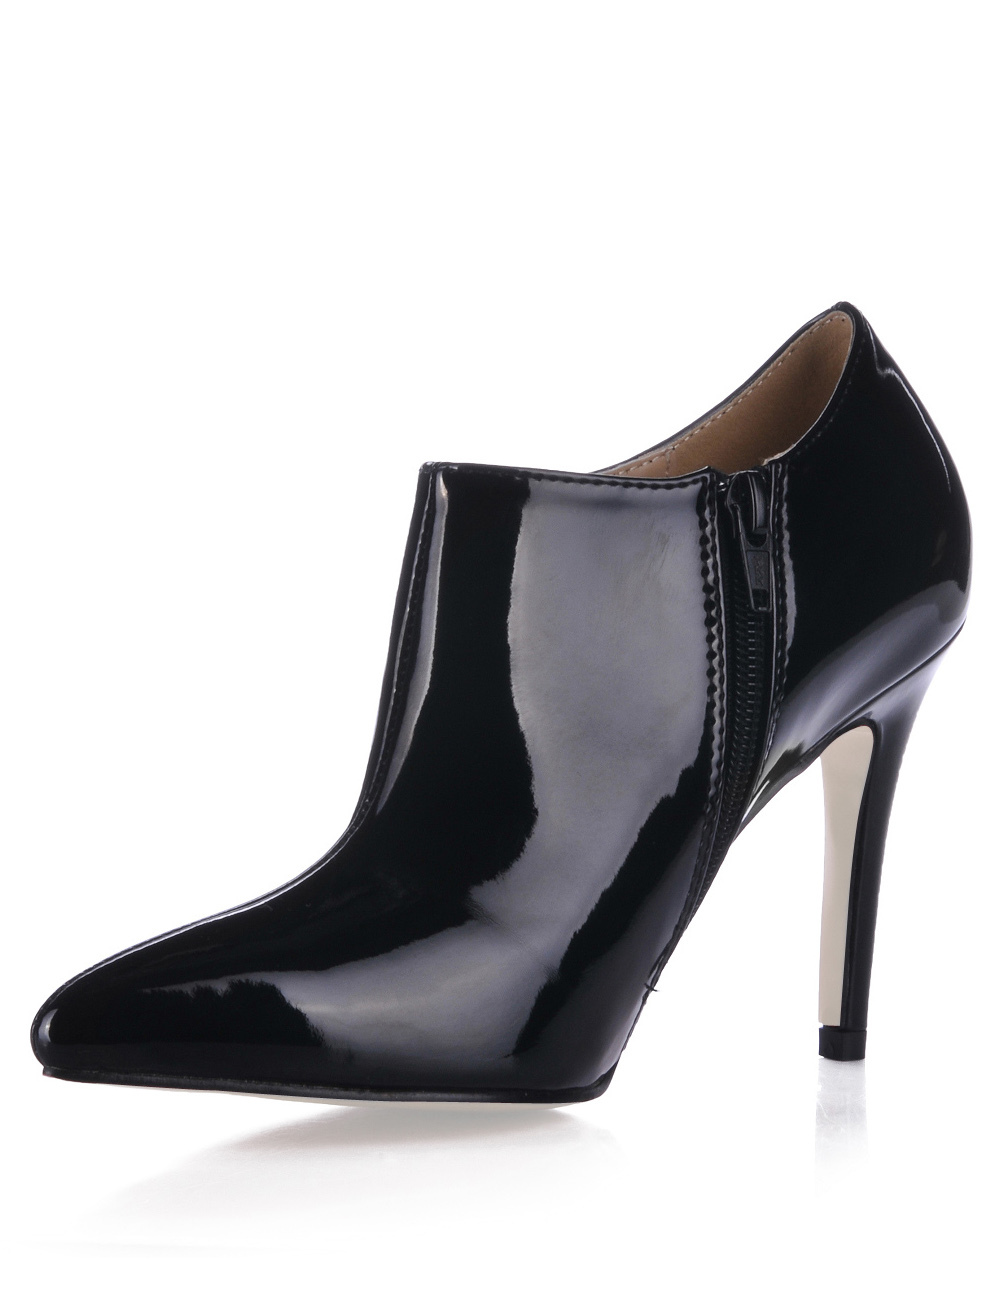 Black Pointed Toe Patent Leather Womens High Heel Booties